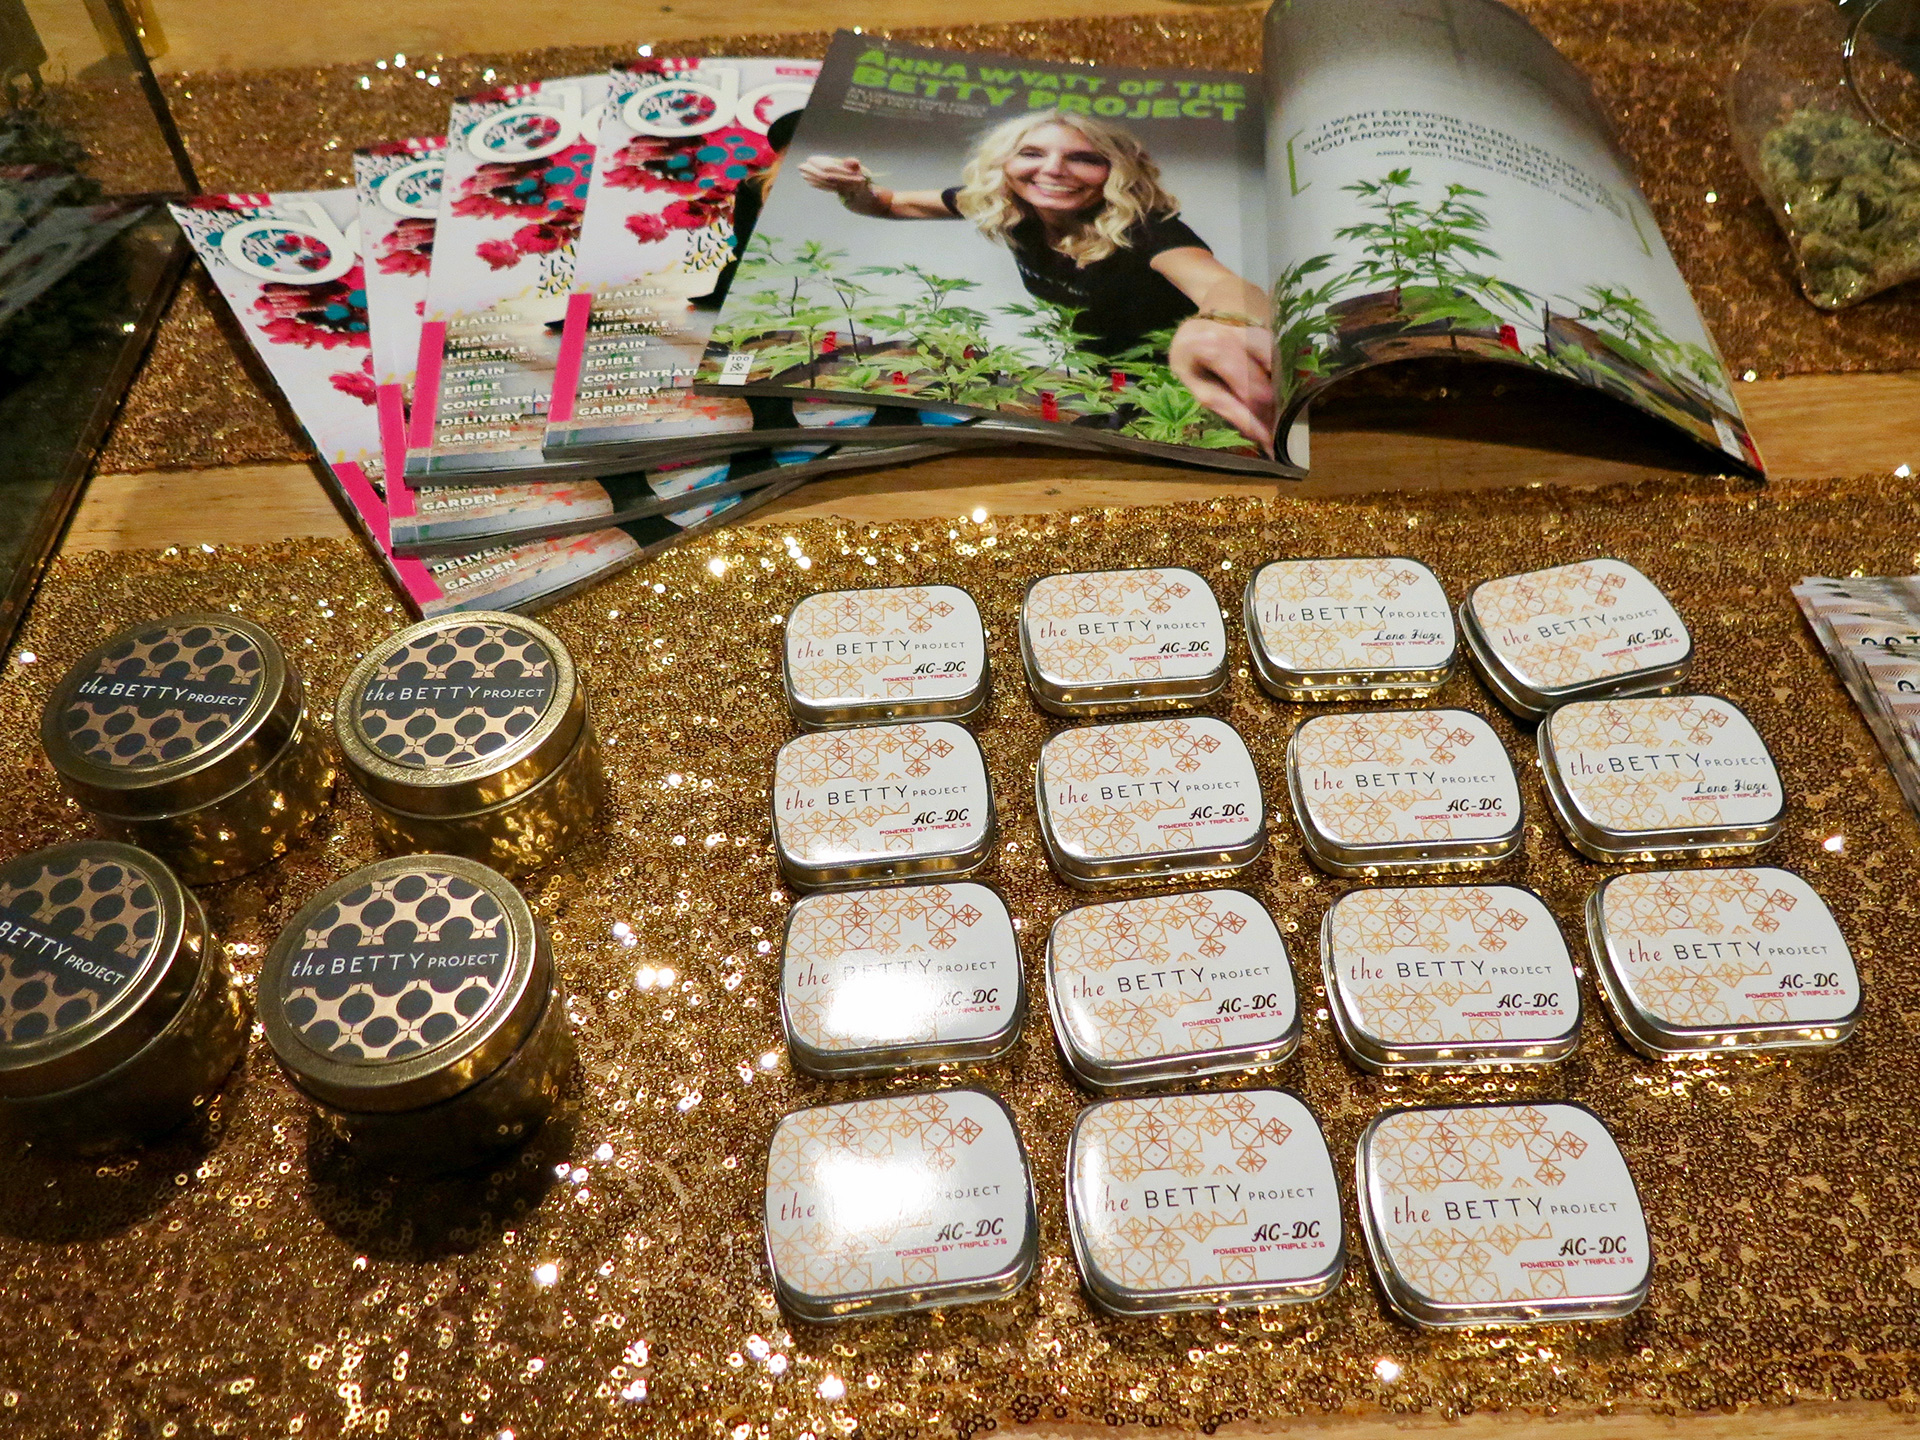 A sponsor's sparkly table (The Betty Project) at the reception at a Cannaisseur event.